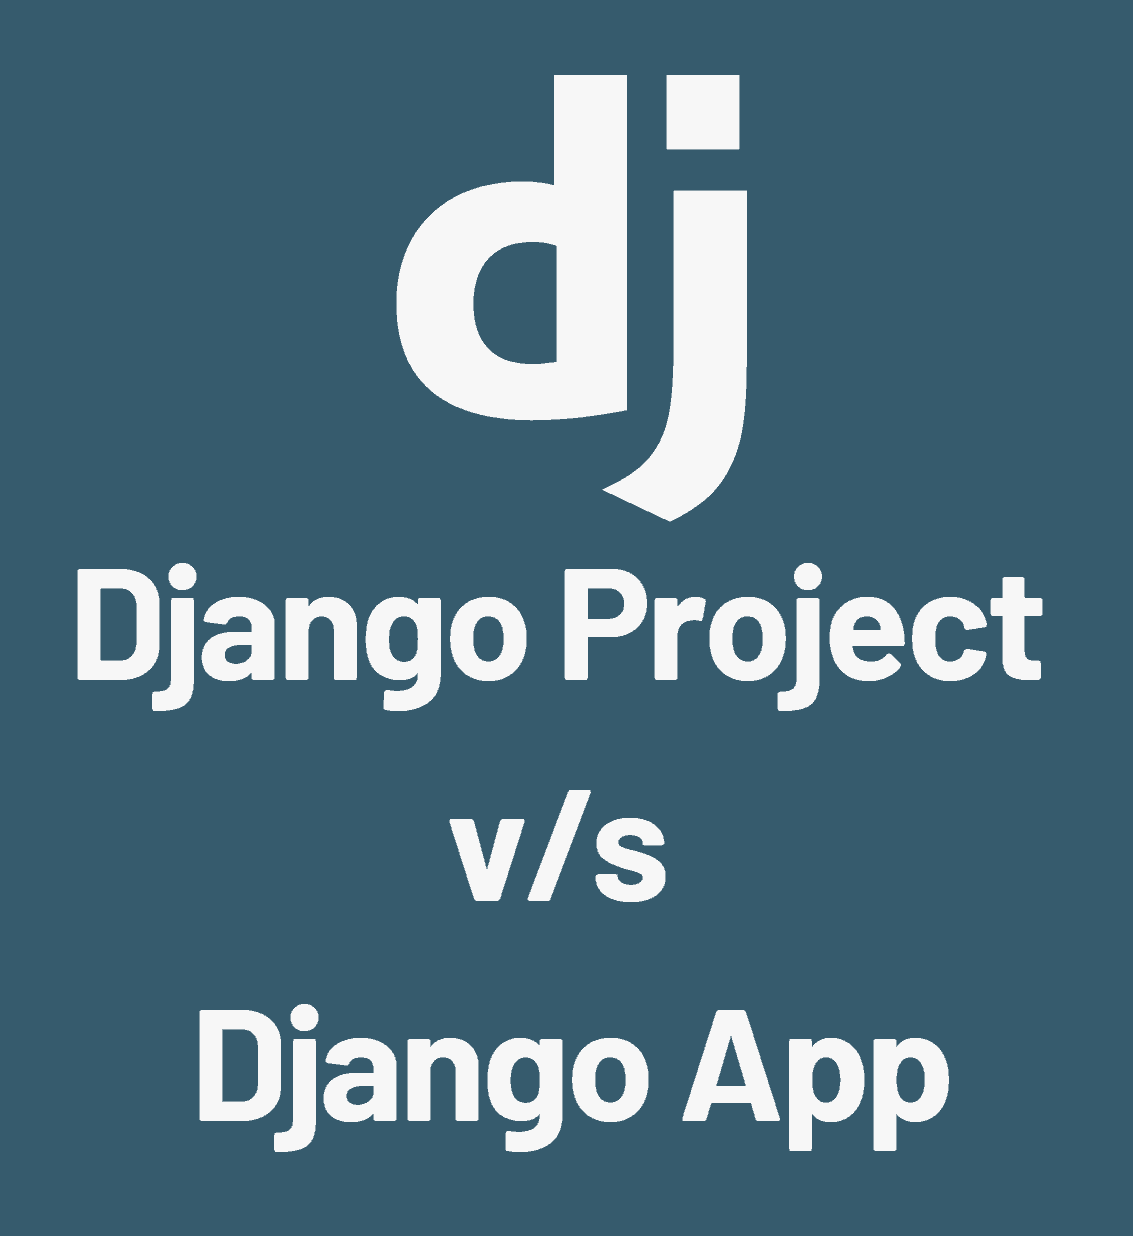 Difference between app and project in Django